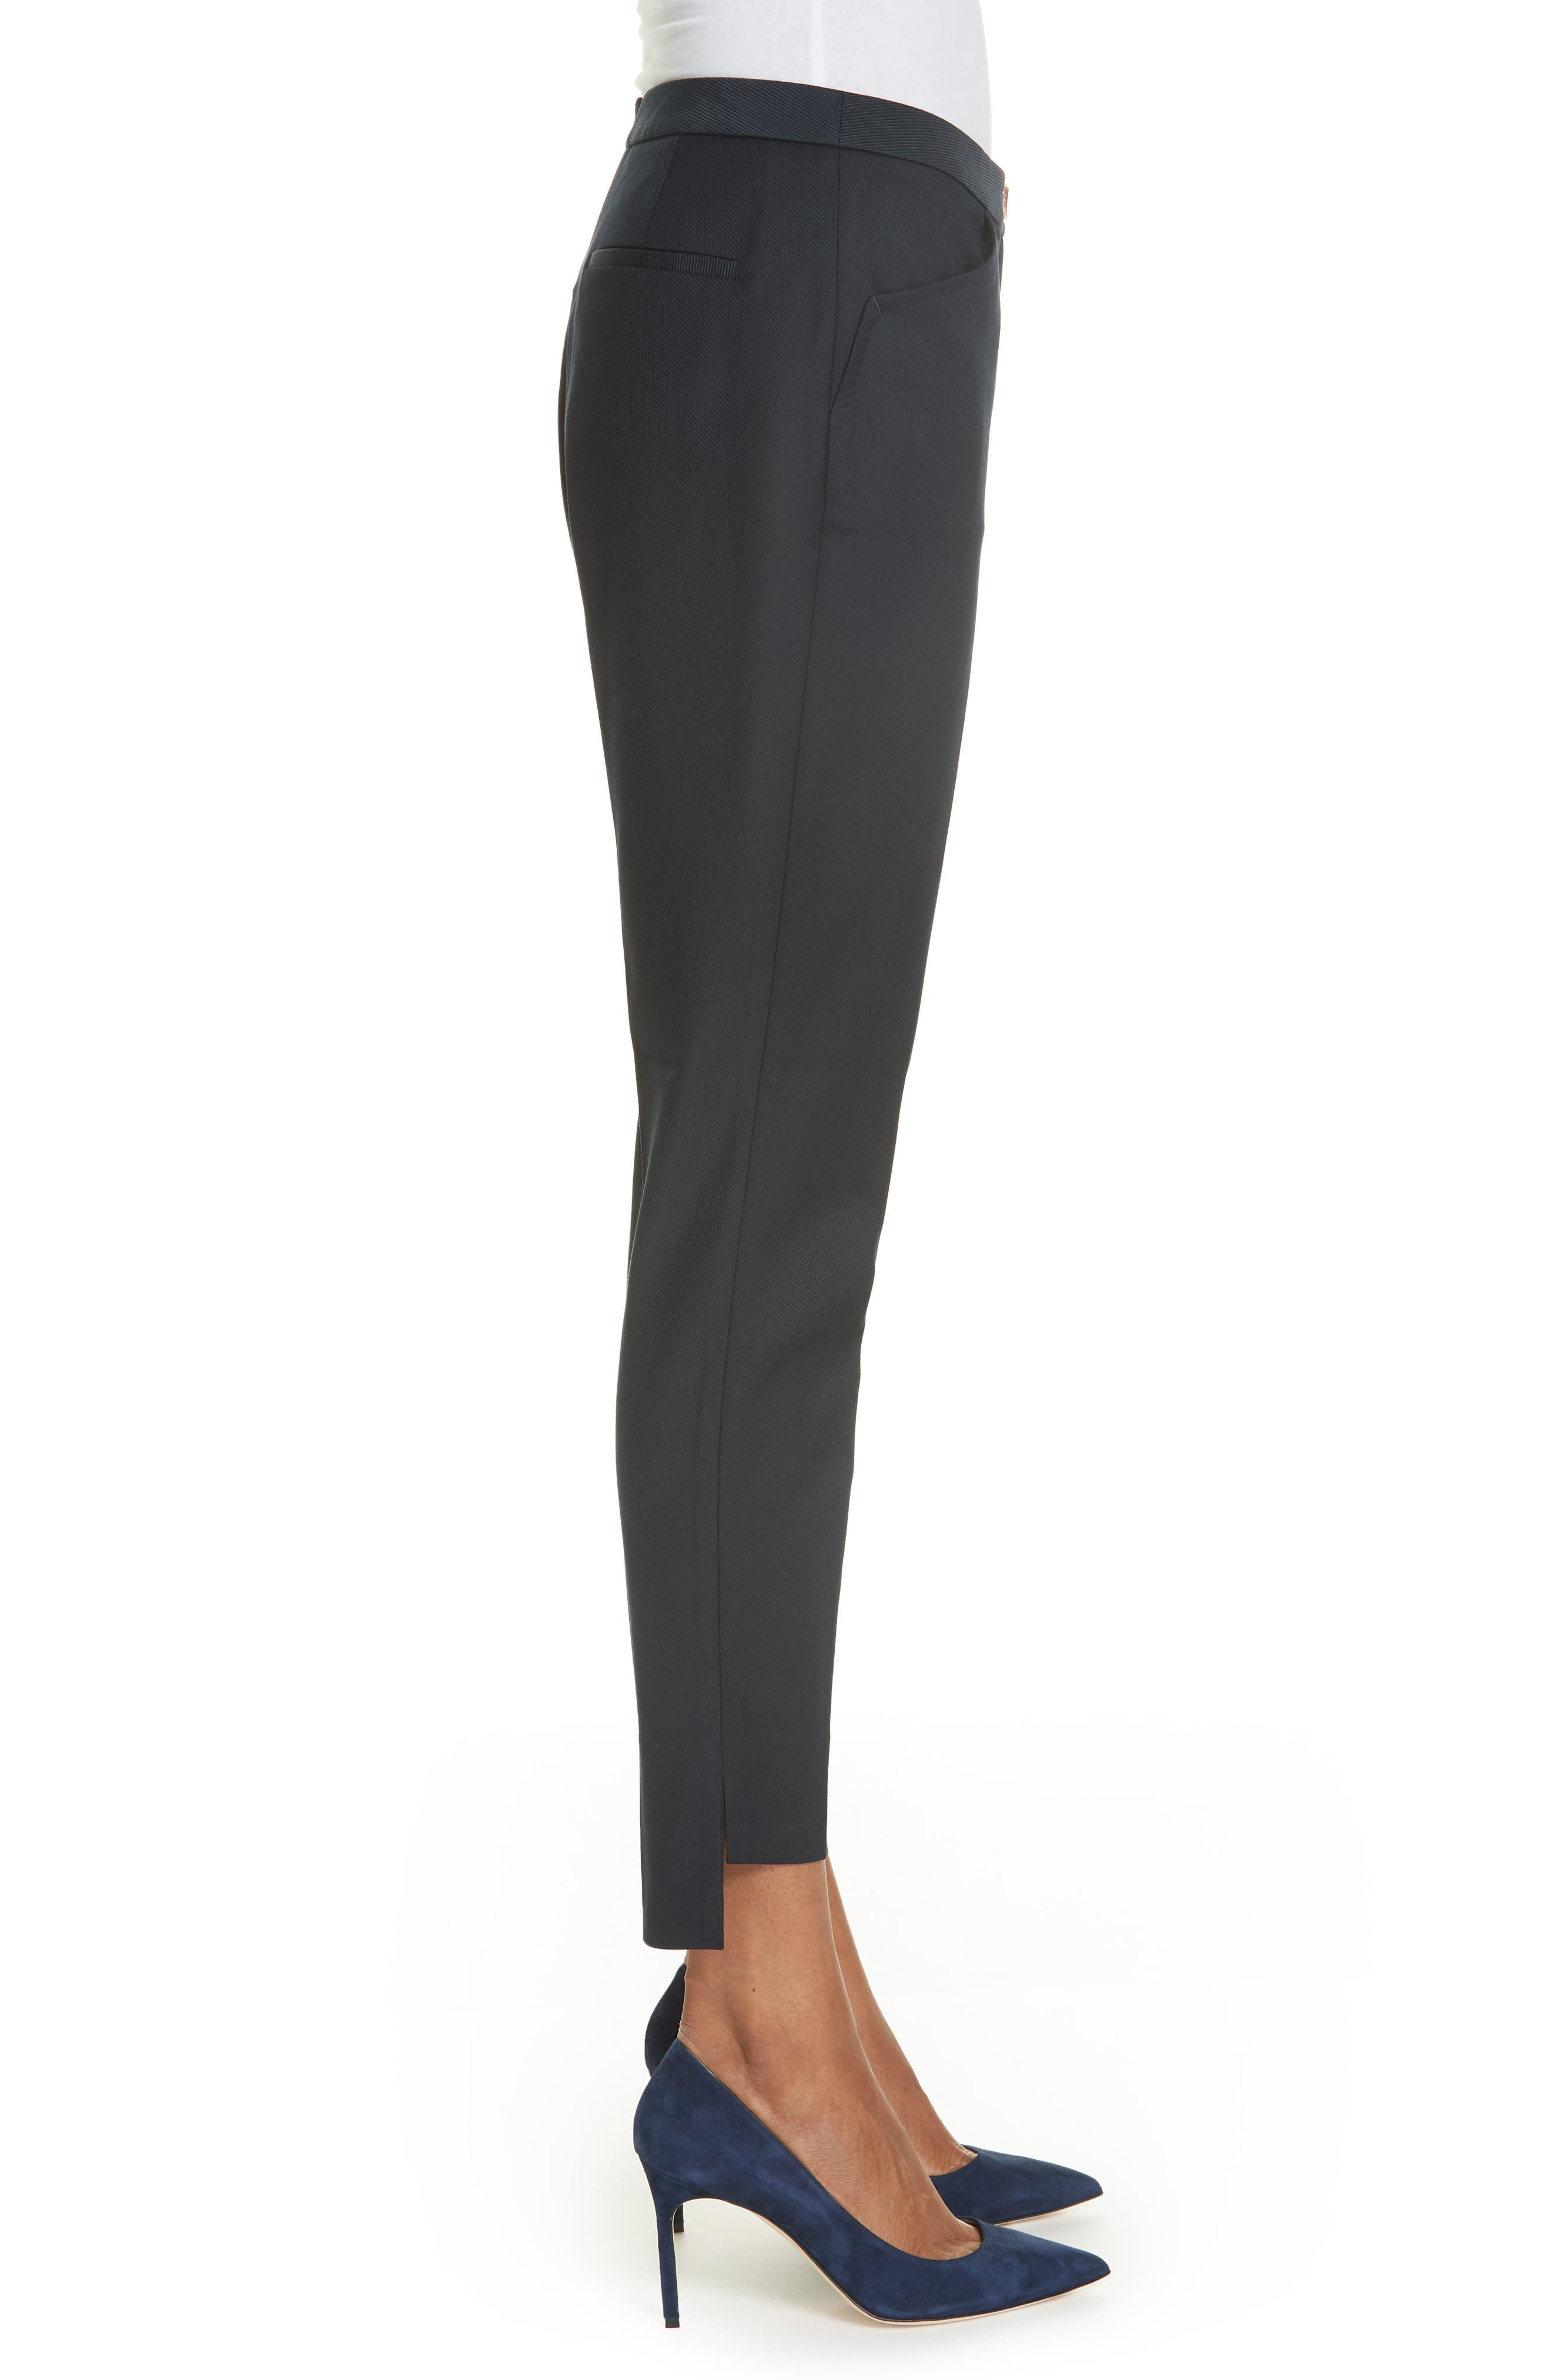 TED BAKER LONDON,                             Ted Working Title Rivaat Skinny Trousers,                             Alternate thumbnail 3, color,                             402